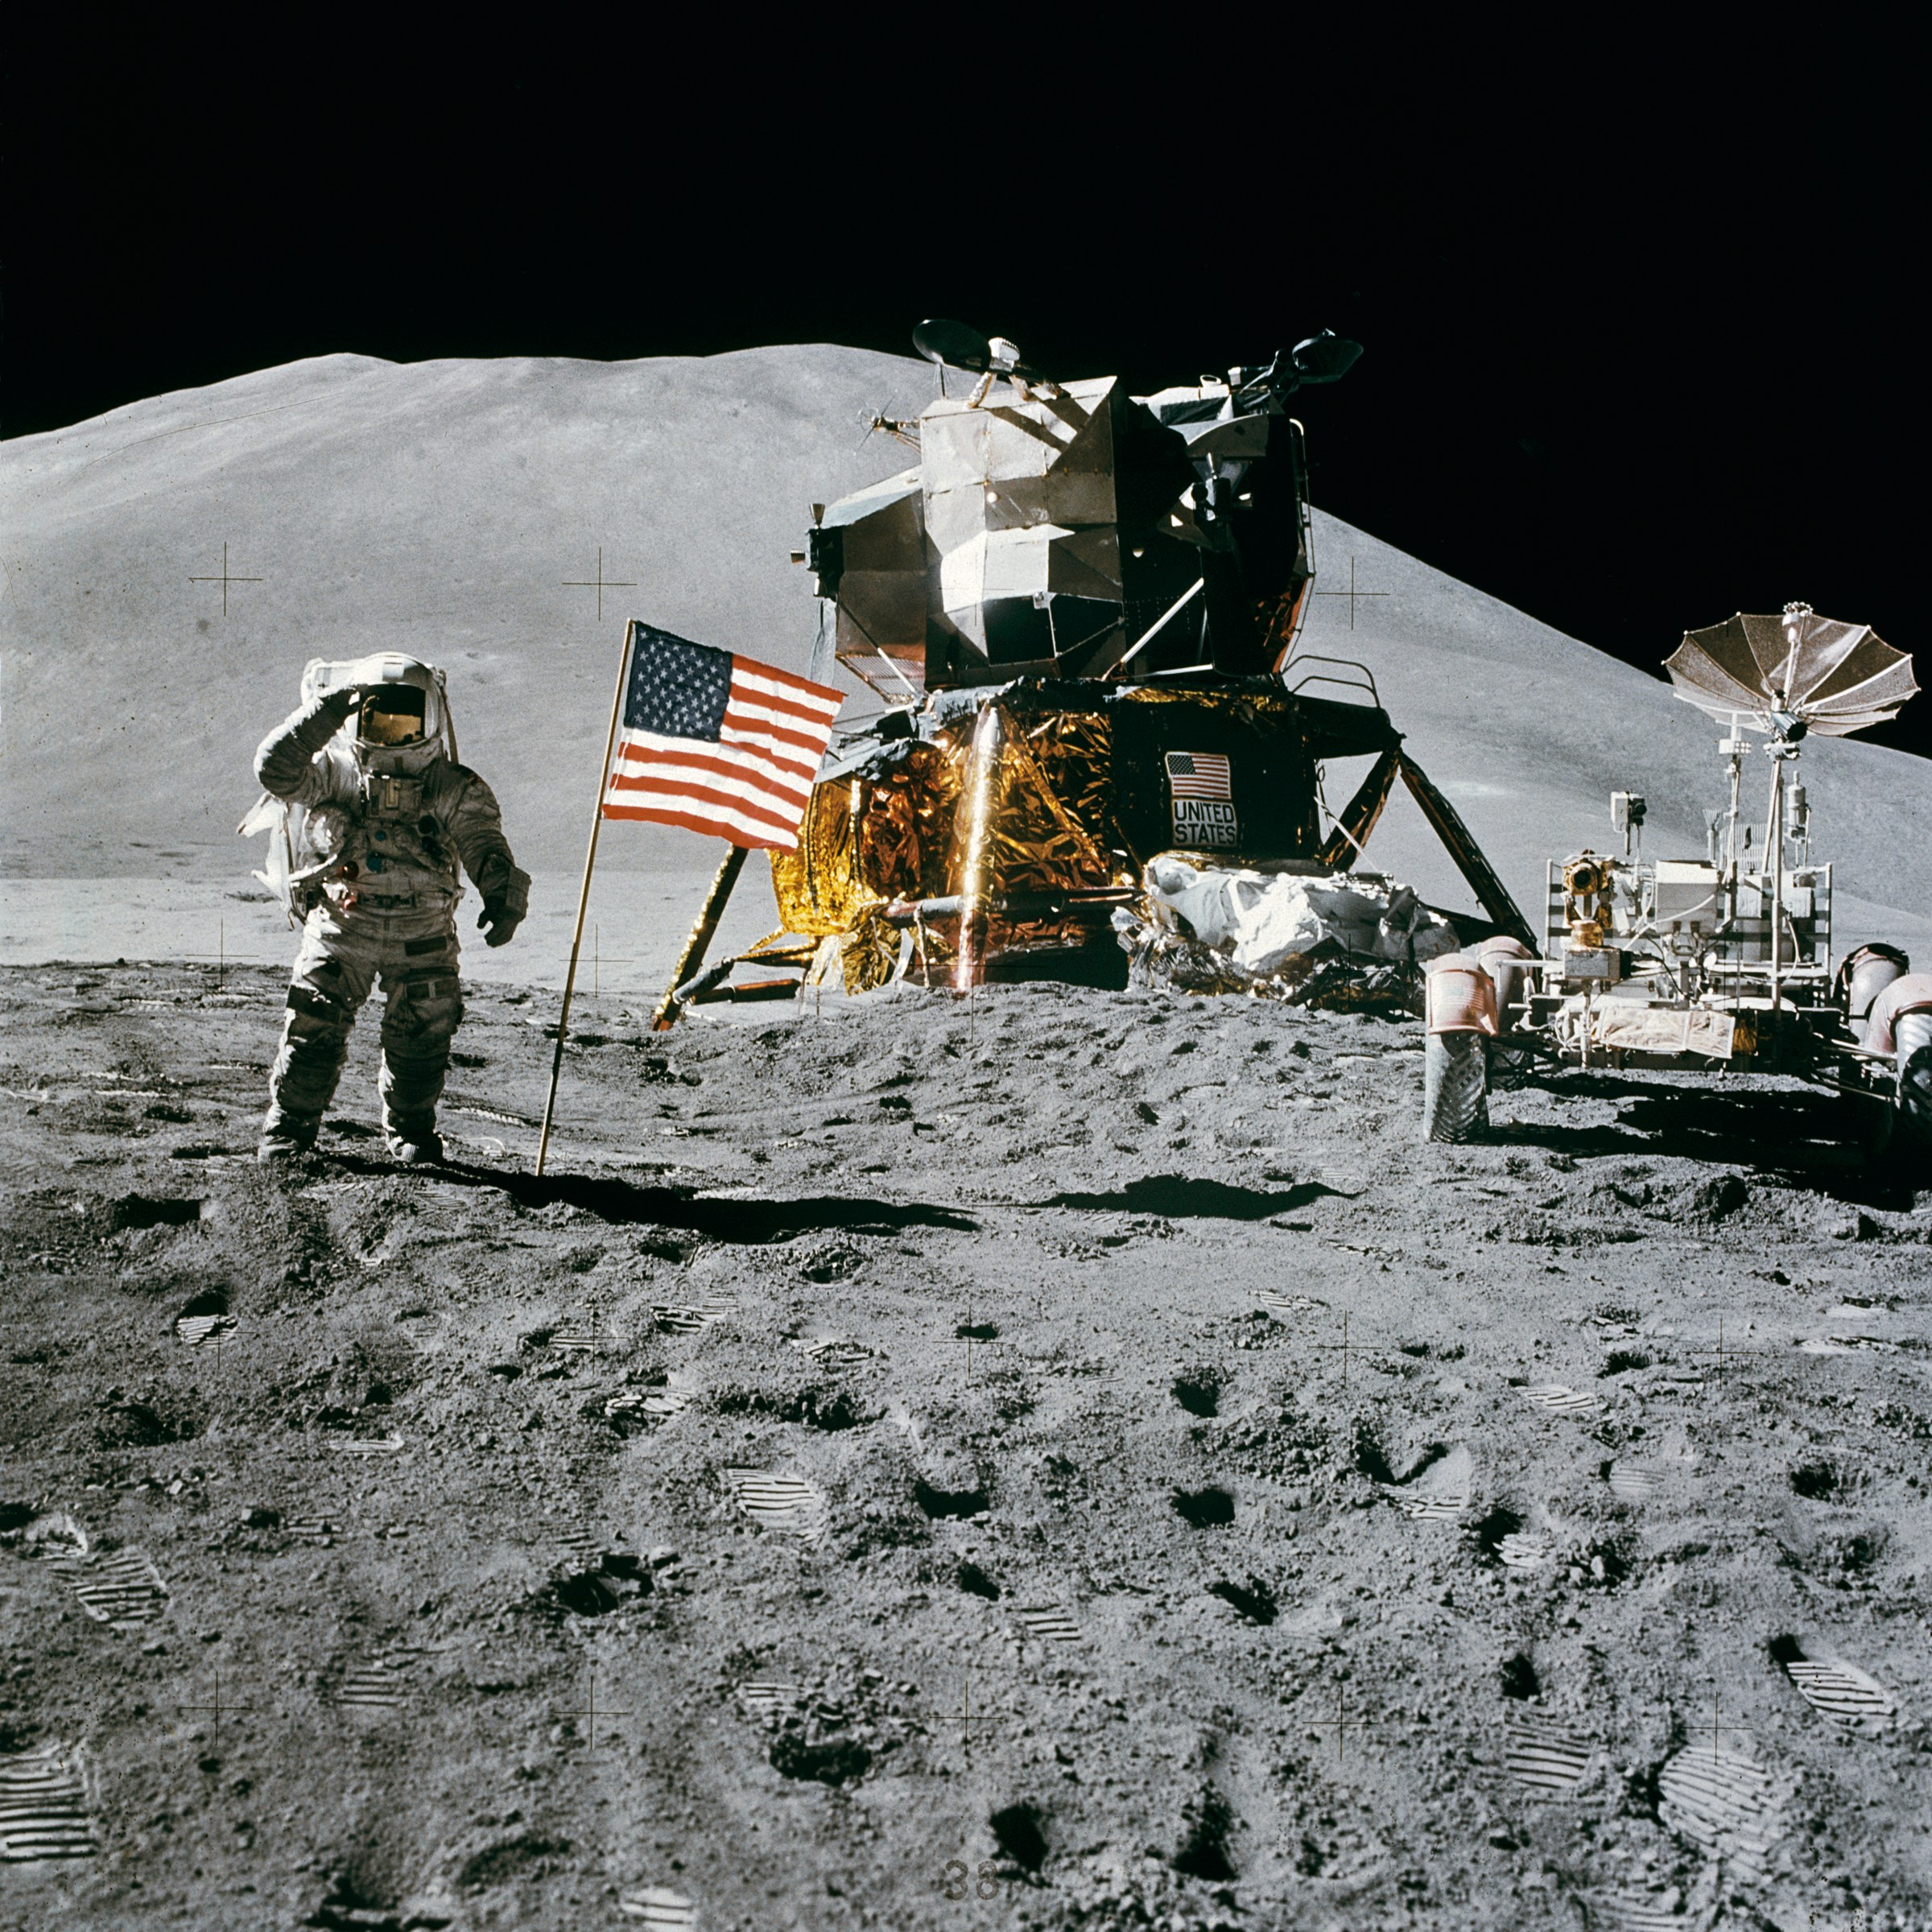 America sent a man to the moon, China has landed on it's far side. A new space race?